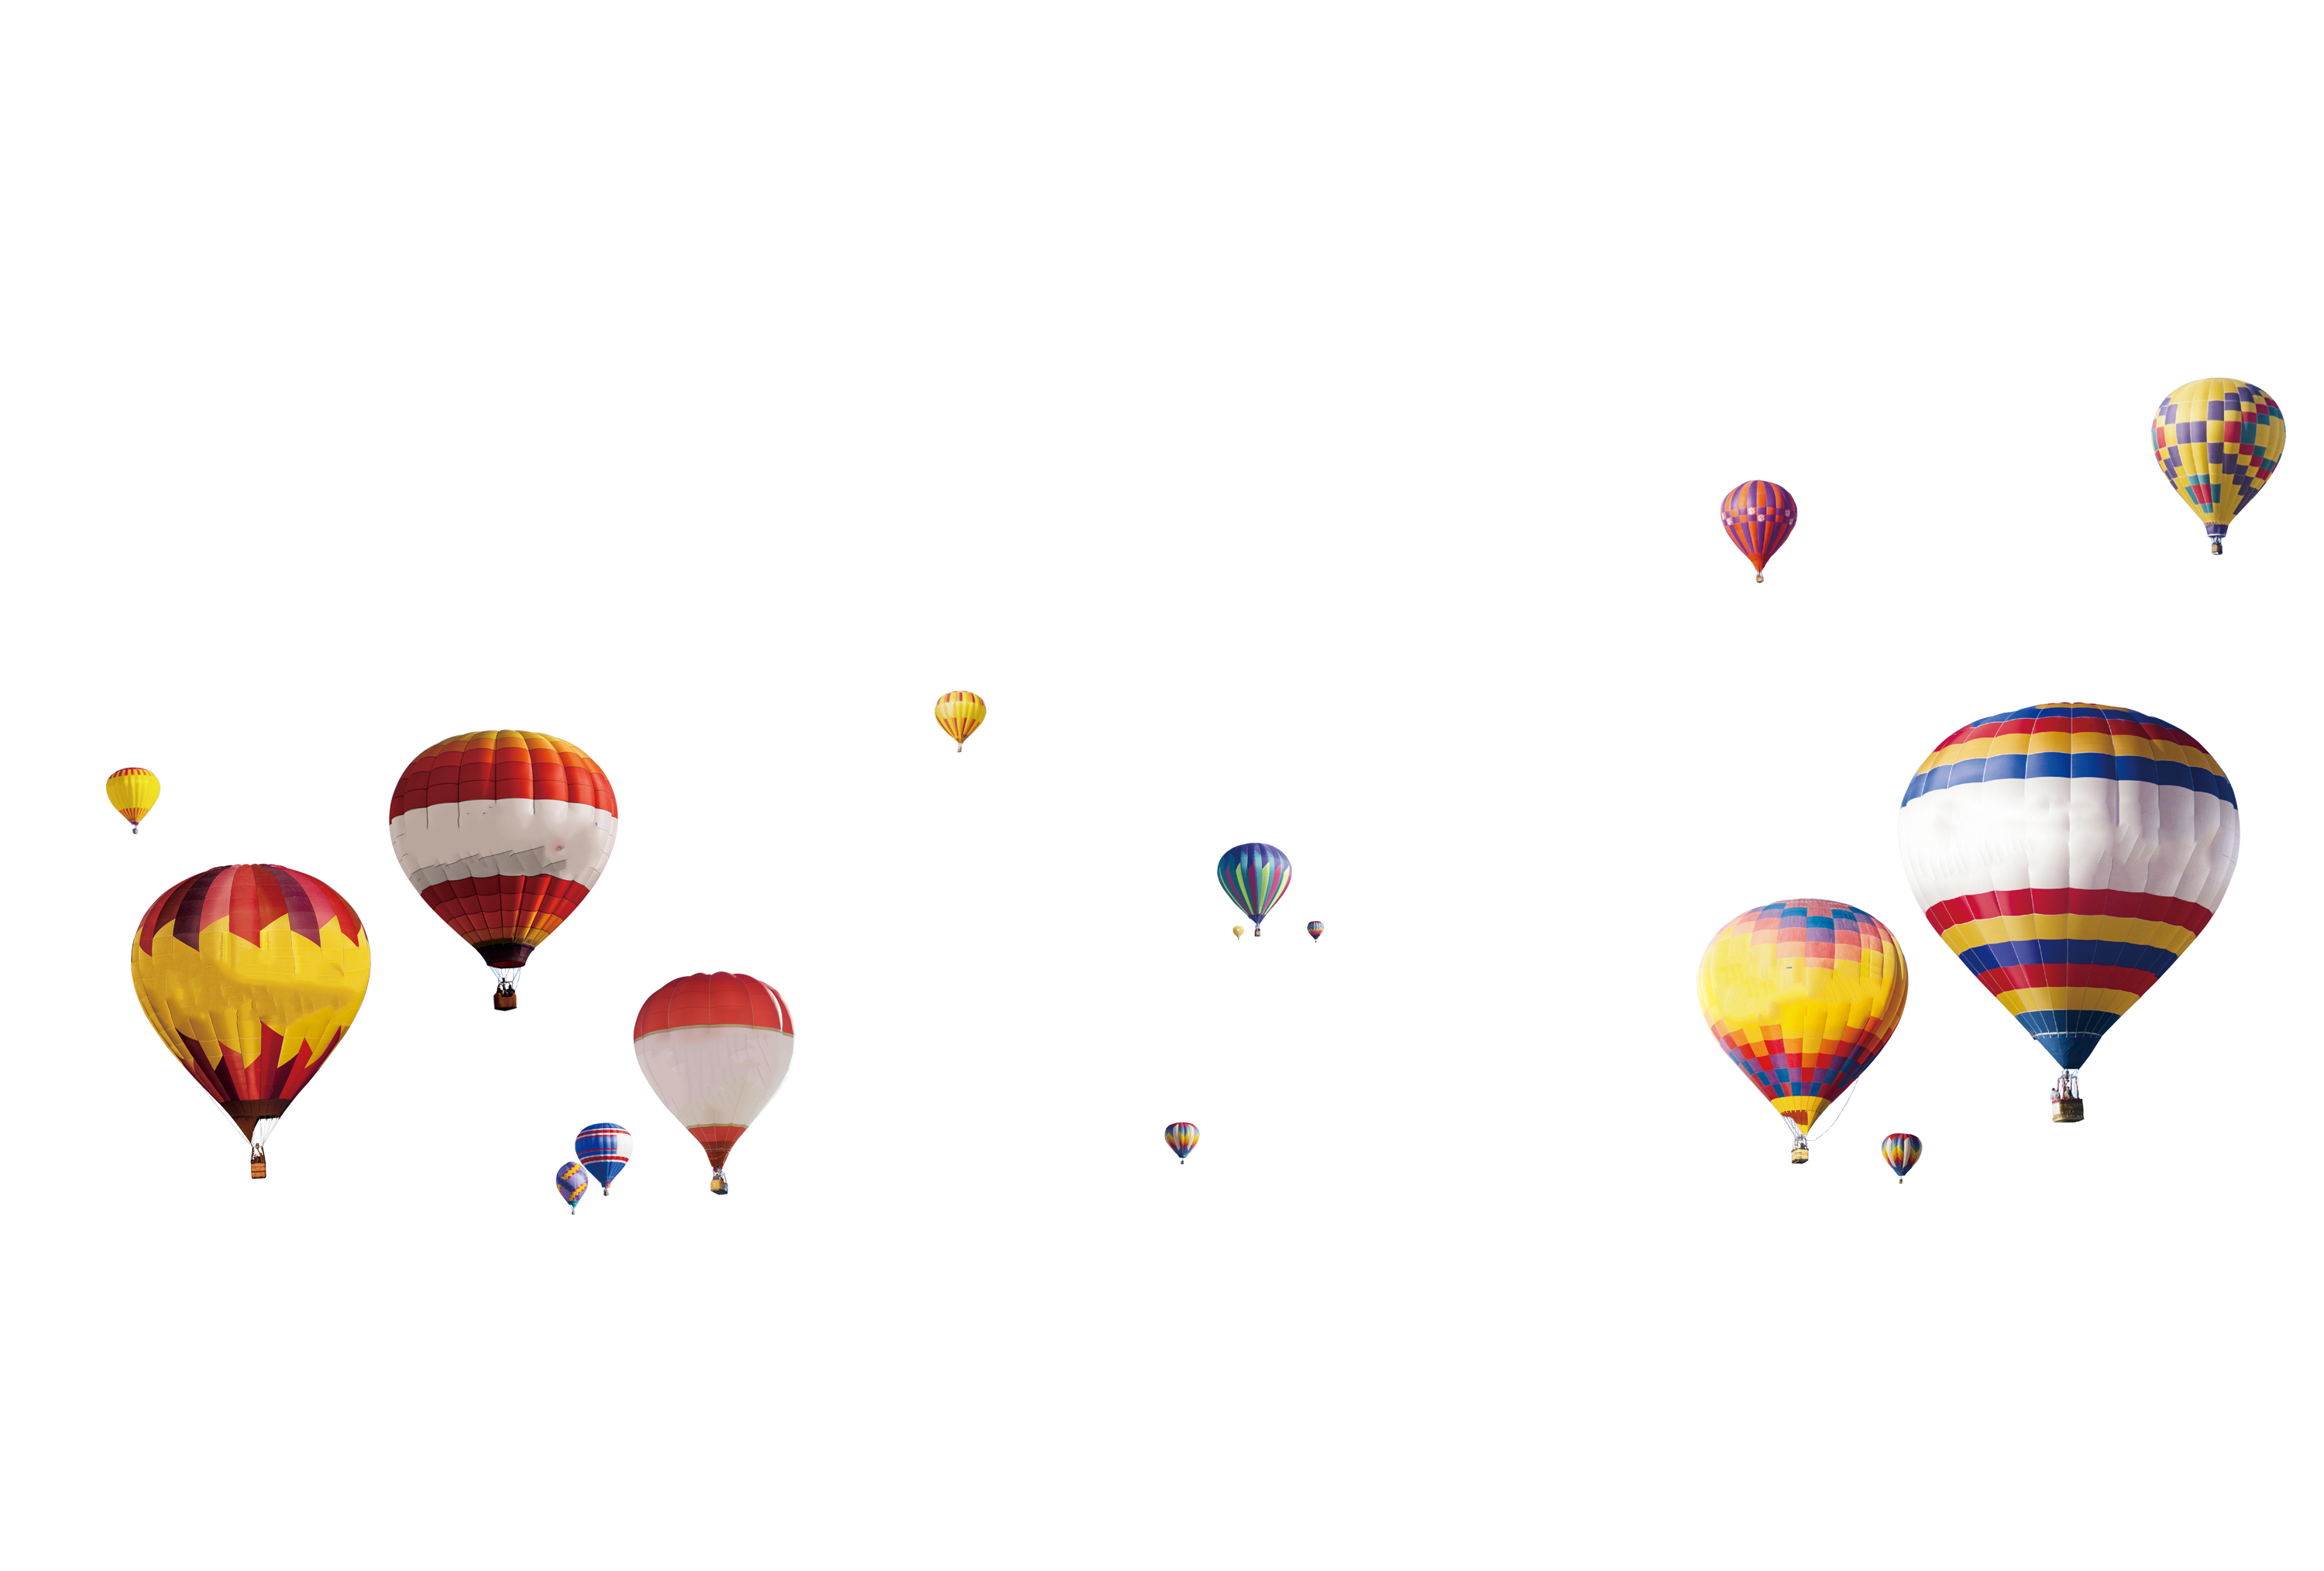 Fries clipart uses heat. Hot air balloon clip